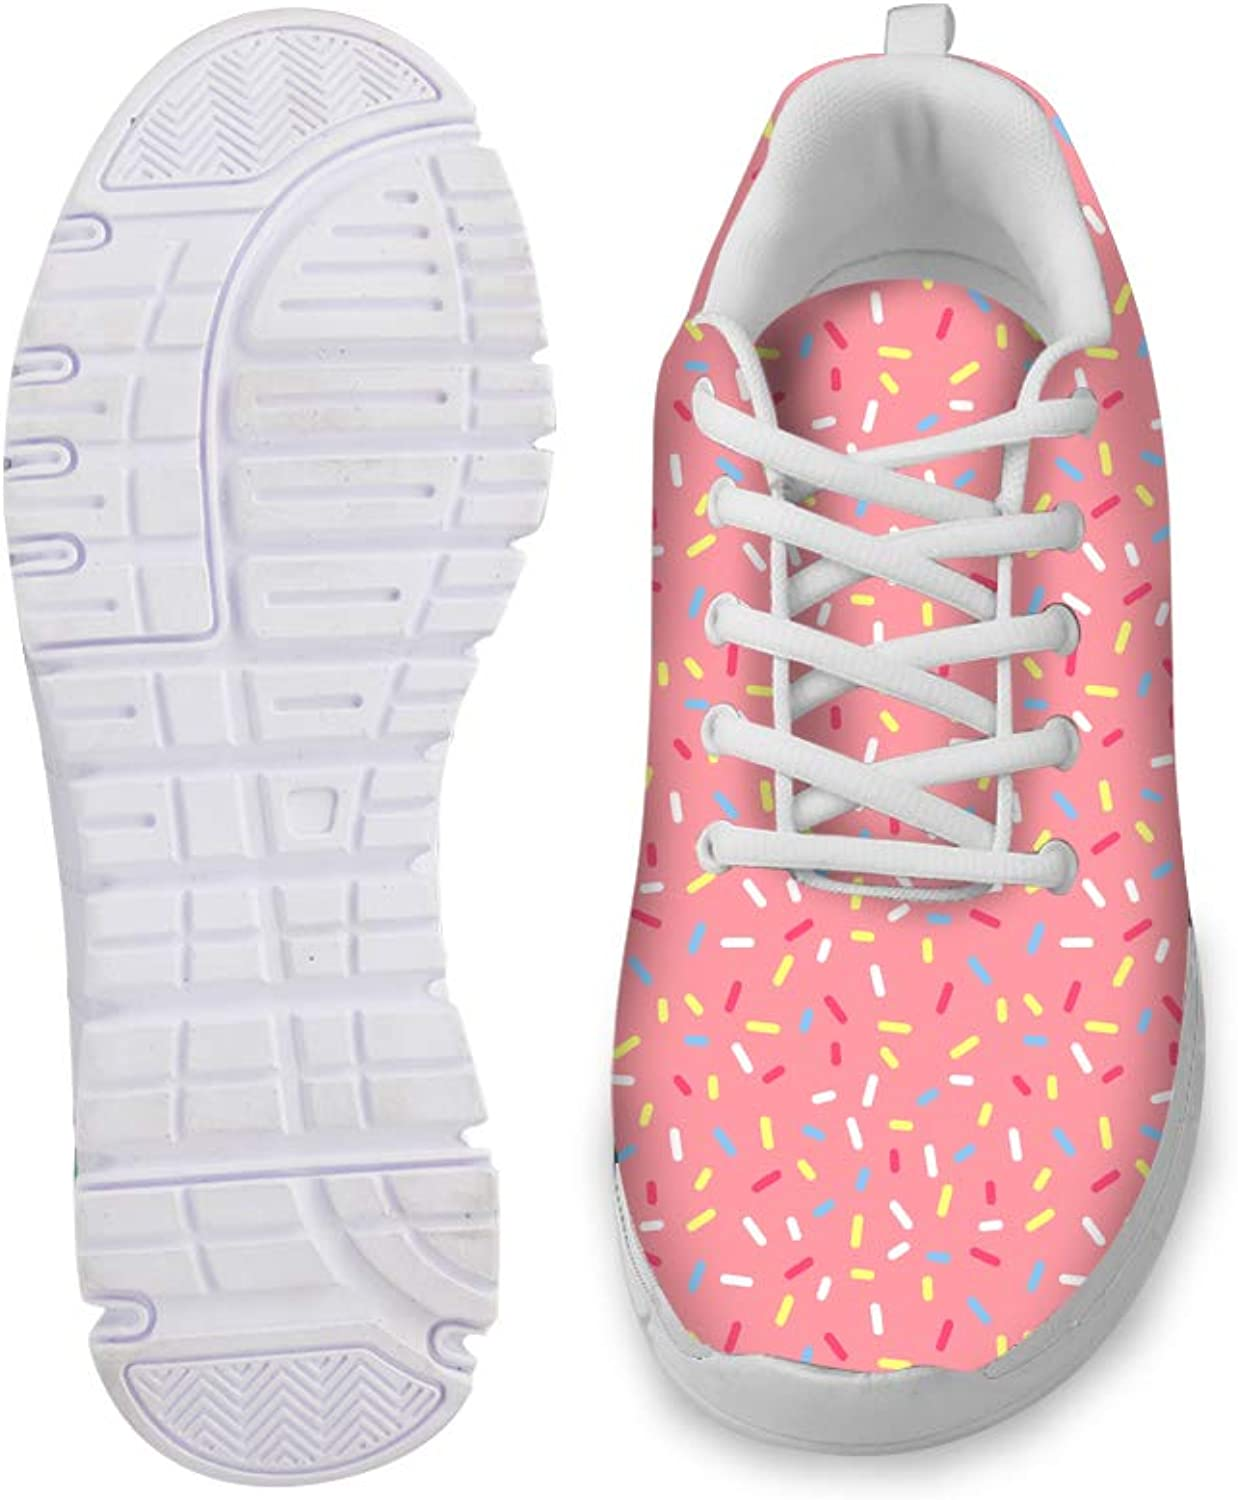 Owaheson Laceup Sneaker Training shoes Mens Womens Pink Donut Sprinkles